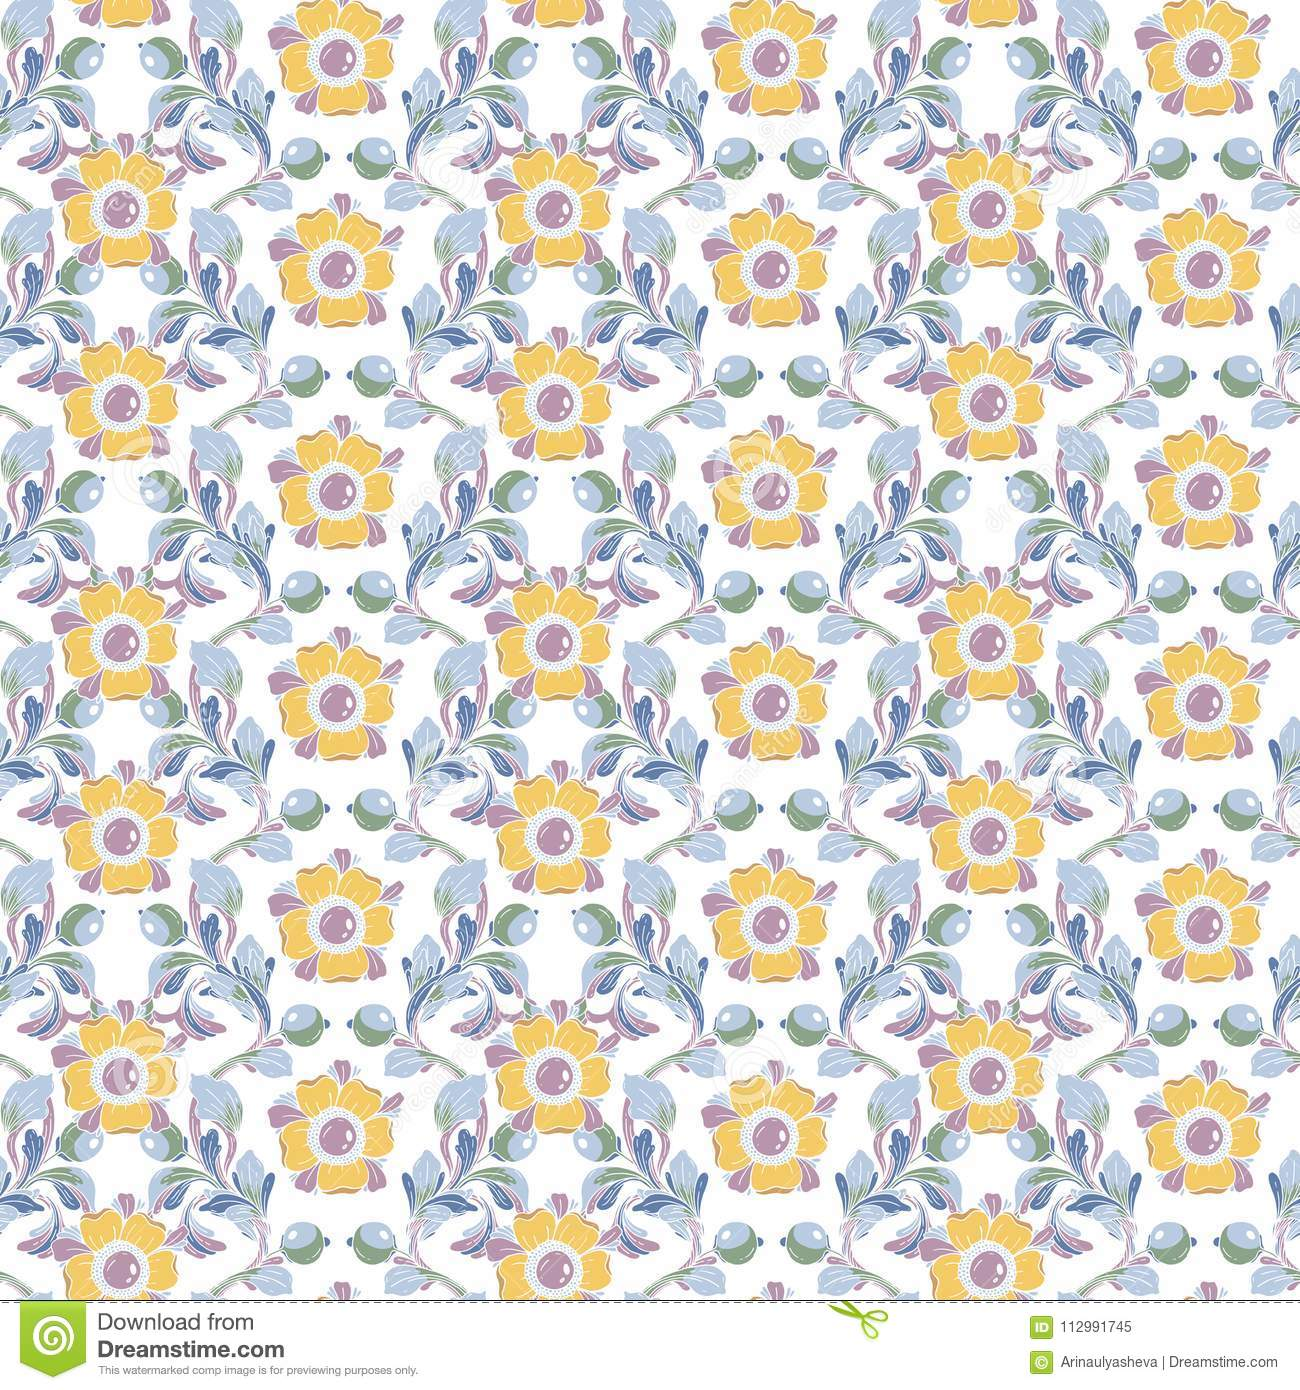 Vector seamless background. Beautiful fantastic floral border ornament delicate.